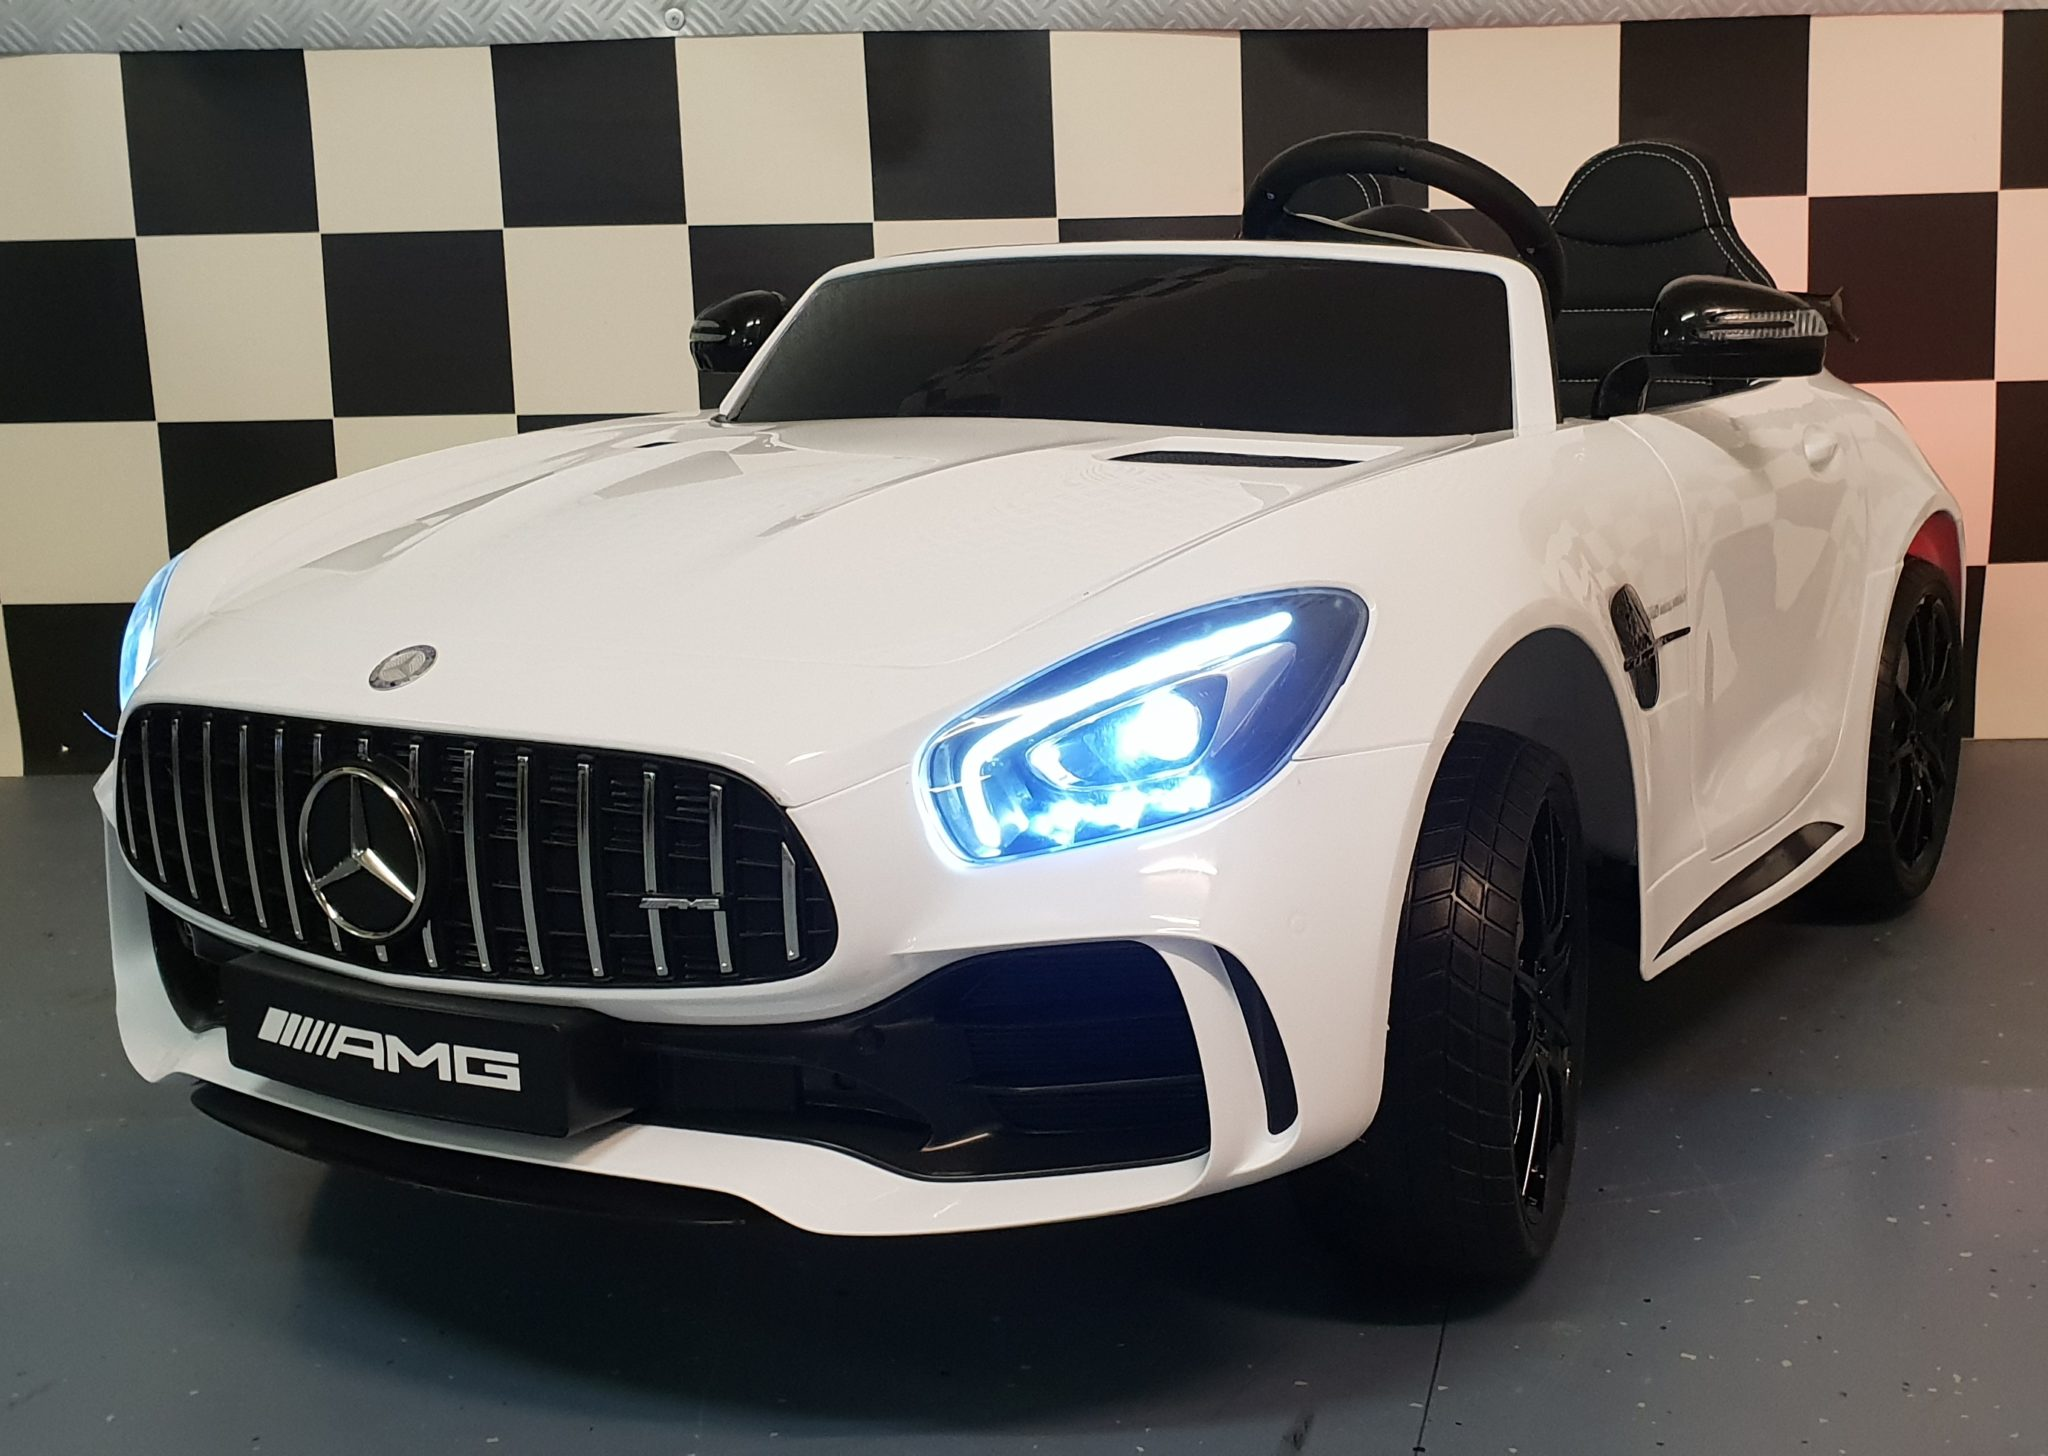 Mercedes 2 persoons kinderauto AMG GTR 2×12 volt 4WD wit